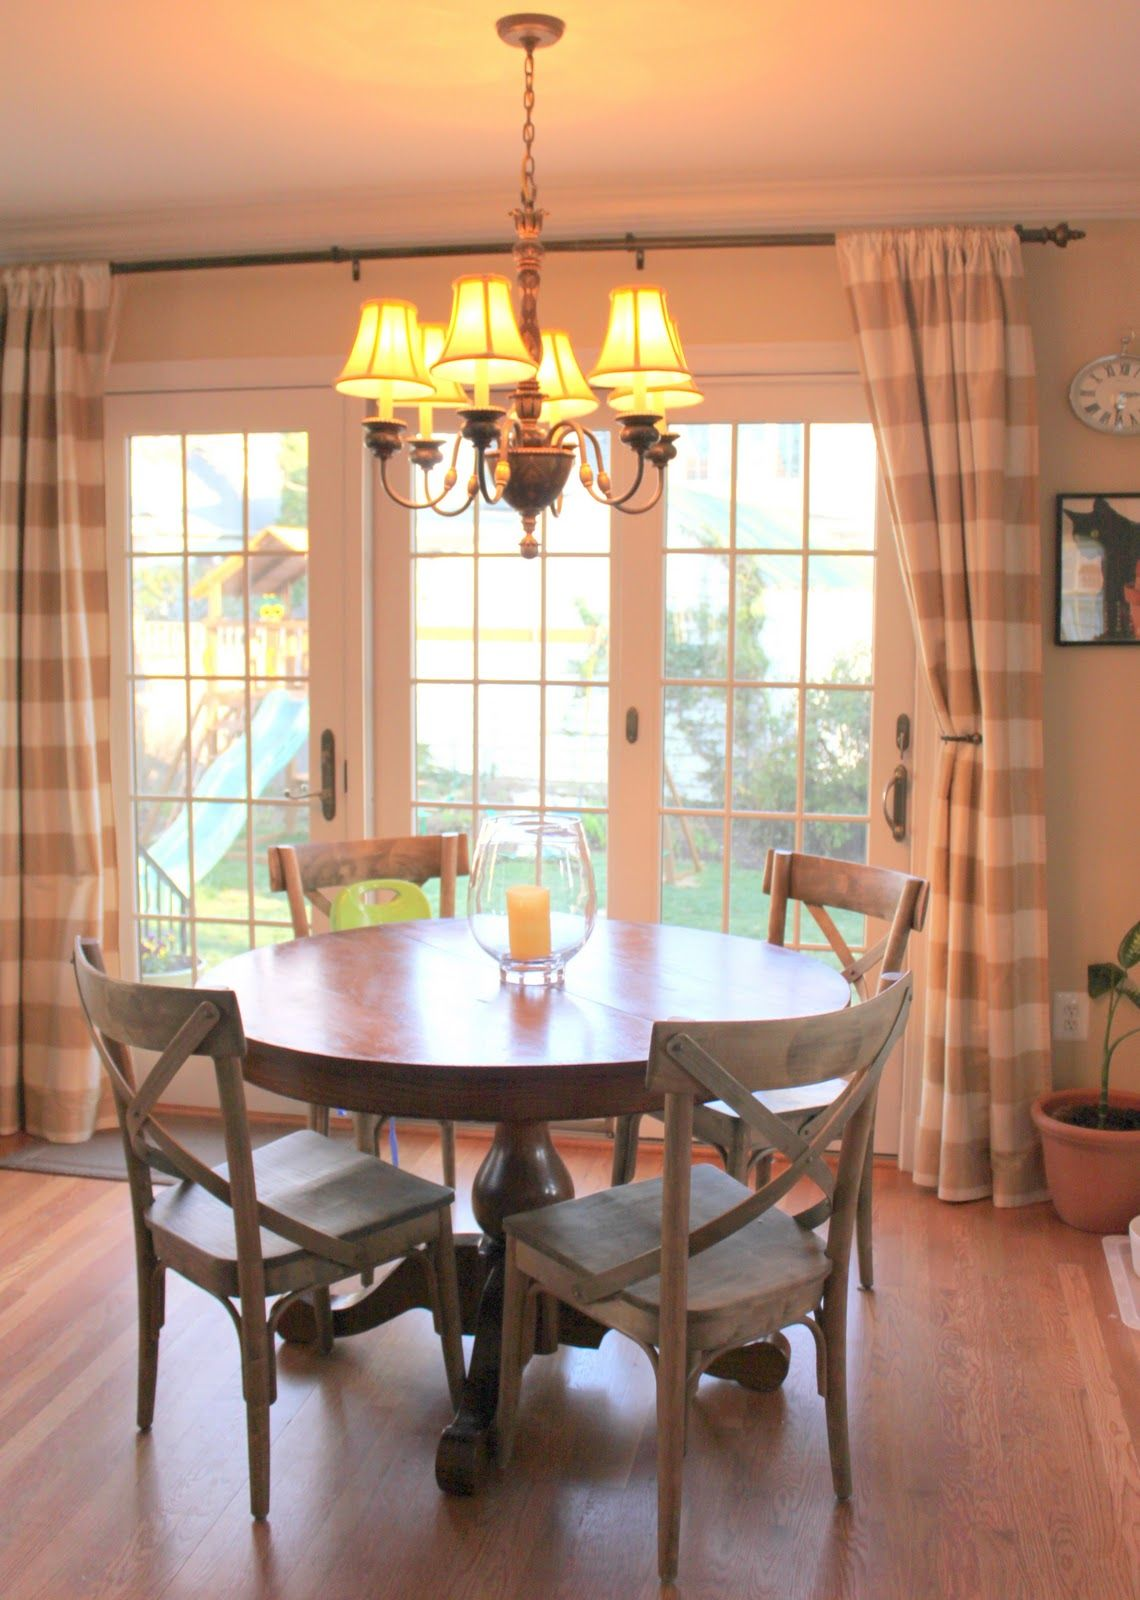 Sliding glass door curtain ideas love the country chairs for Sliding glass doors kitchen